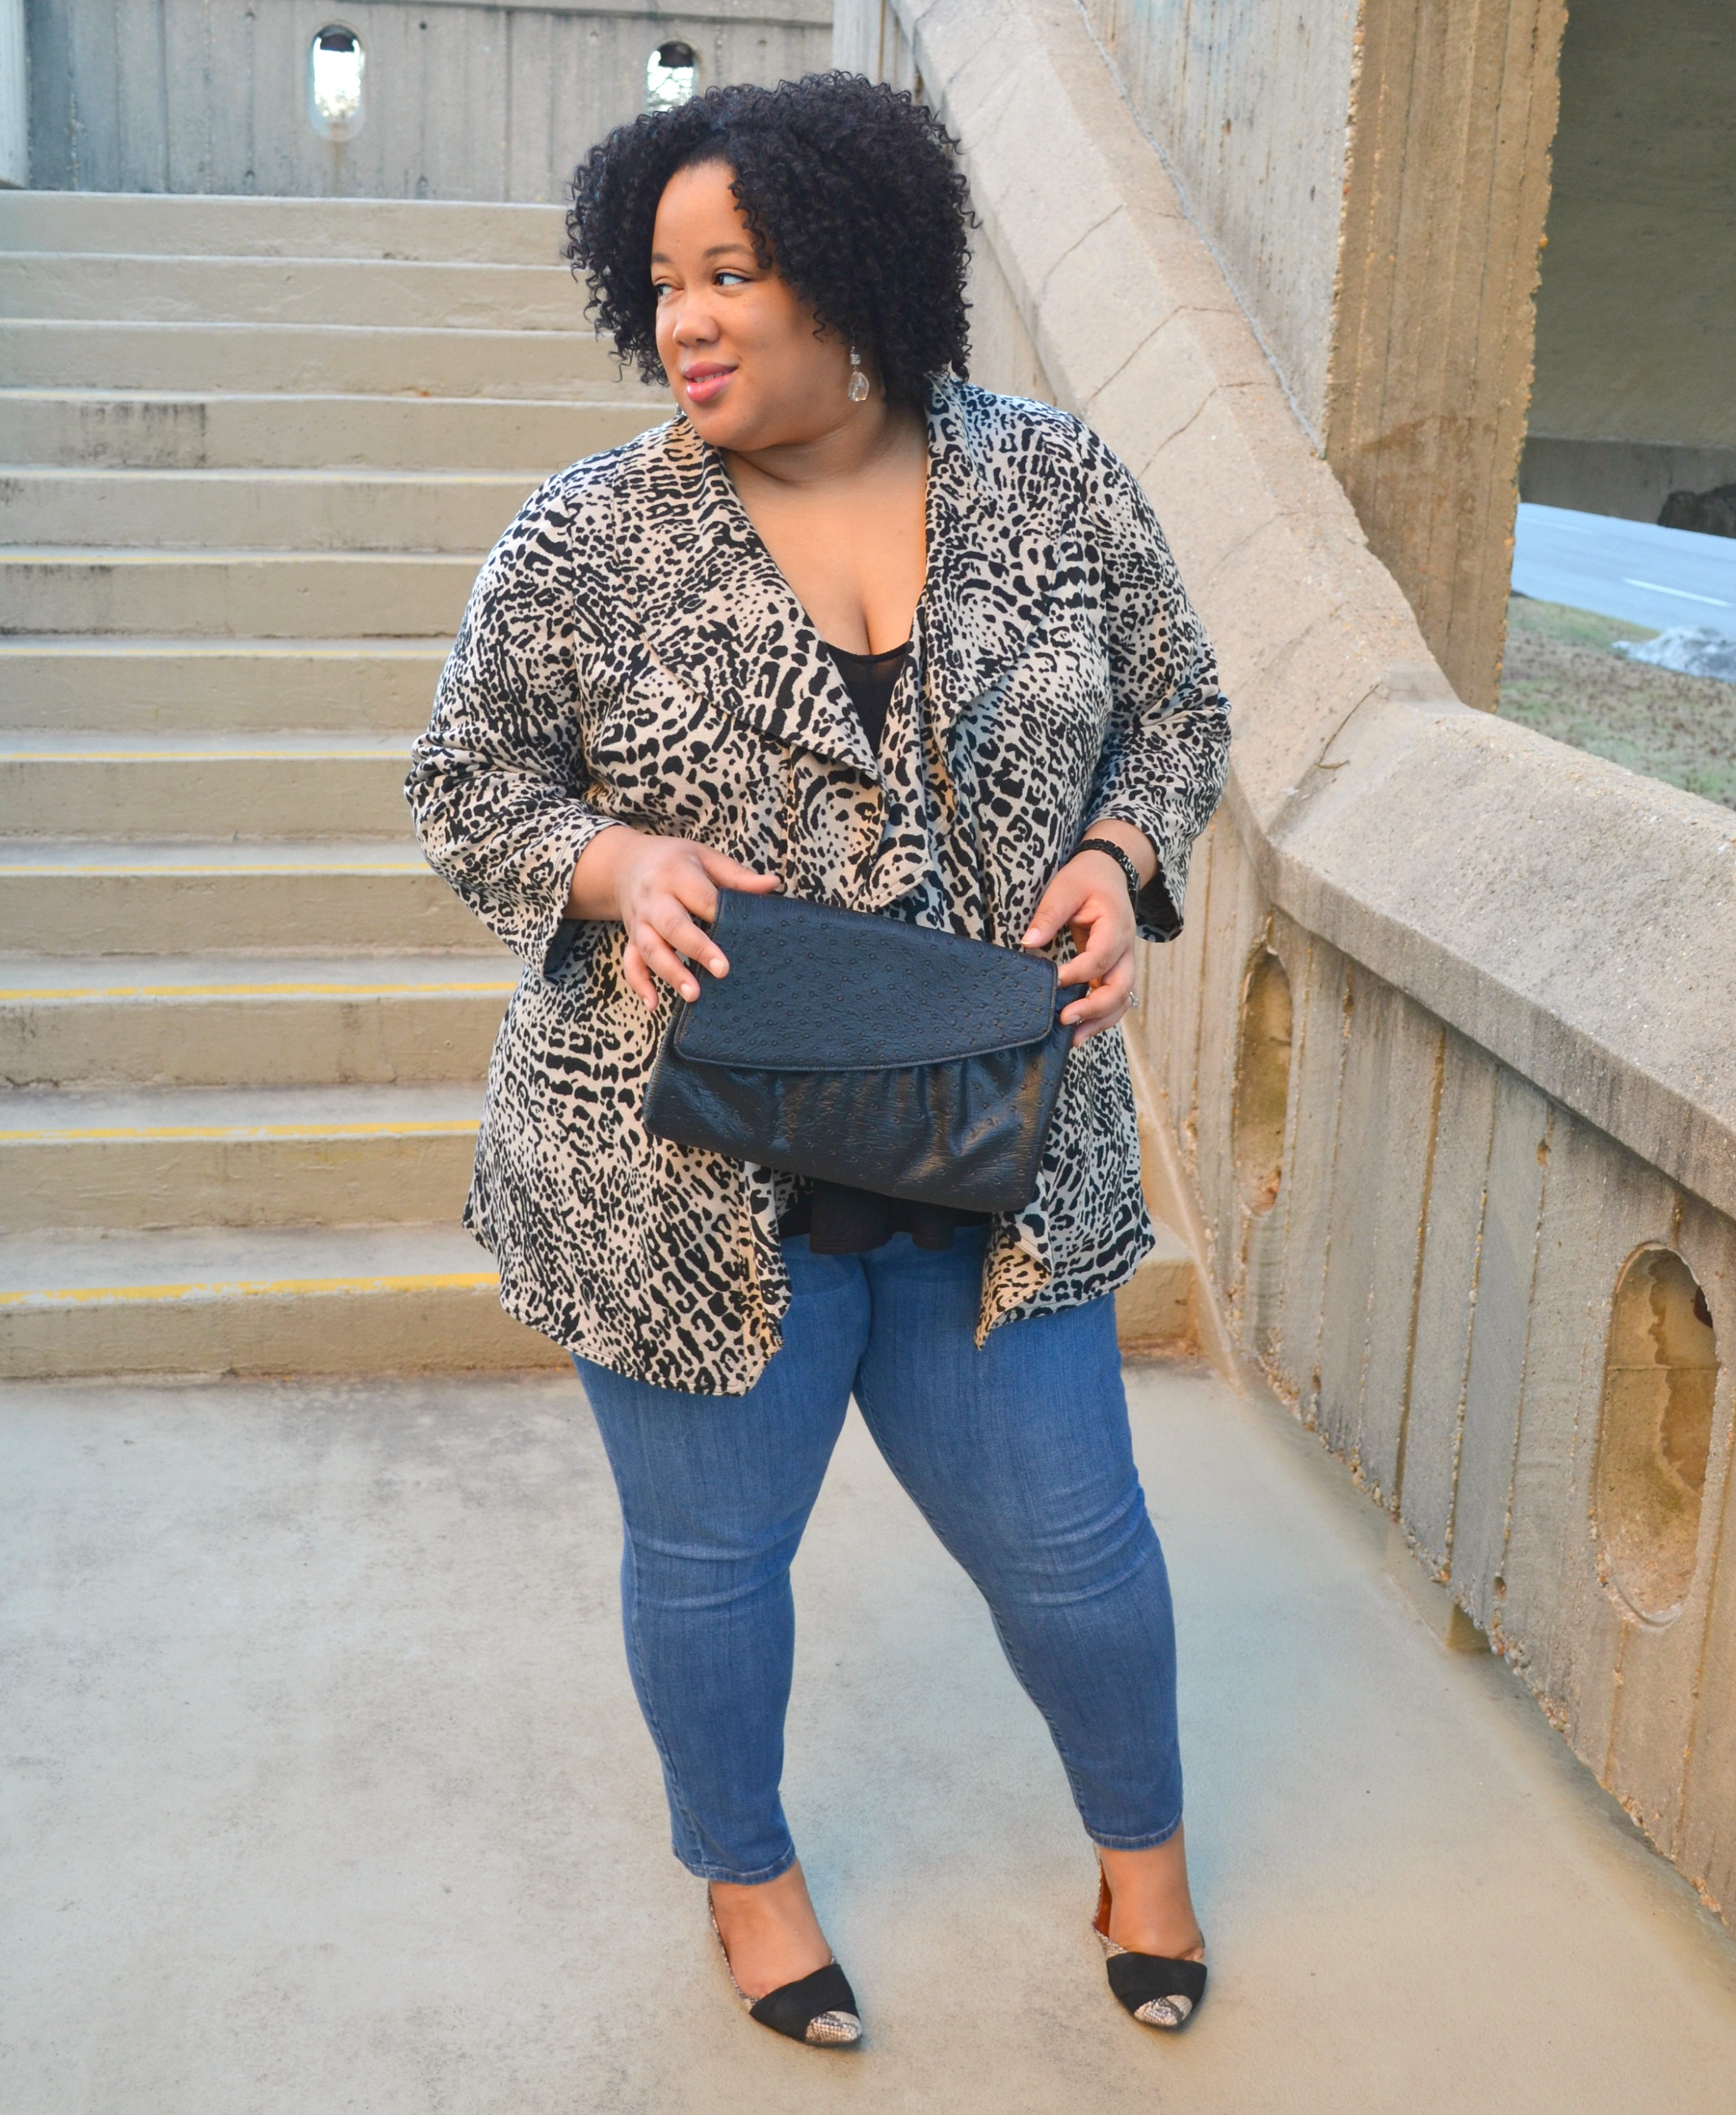 Denim and Animal Print Outfit